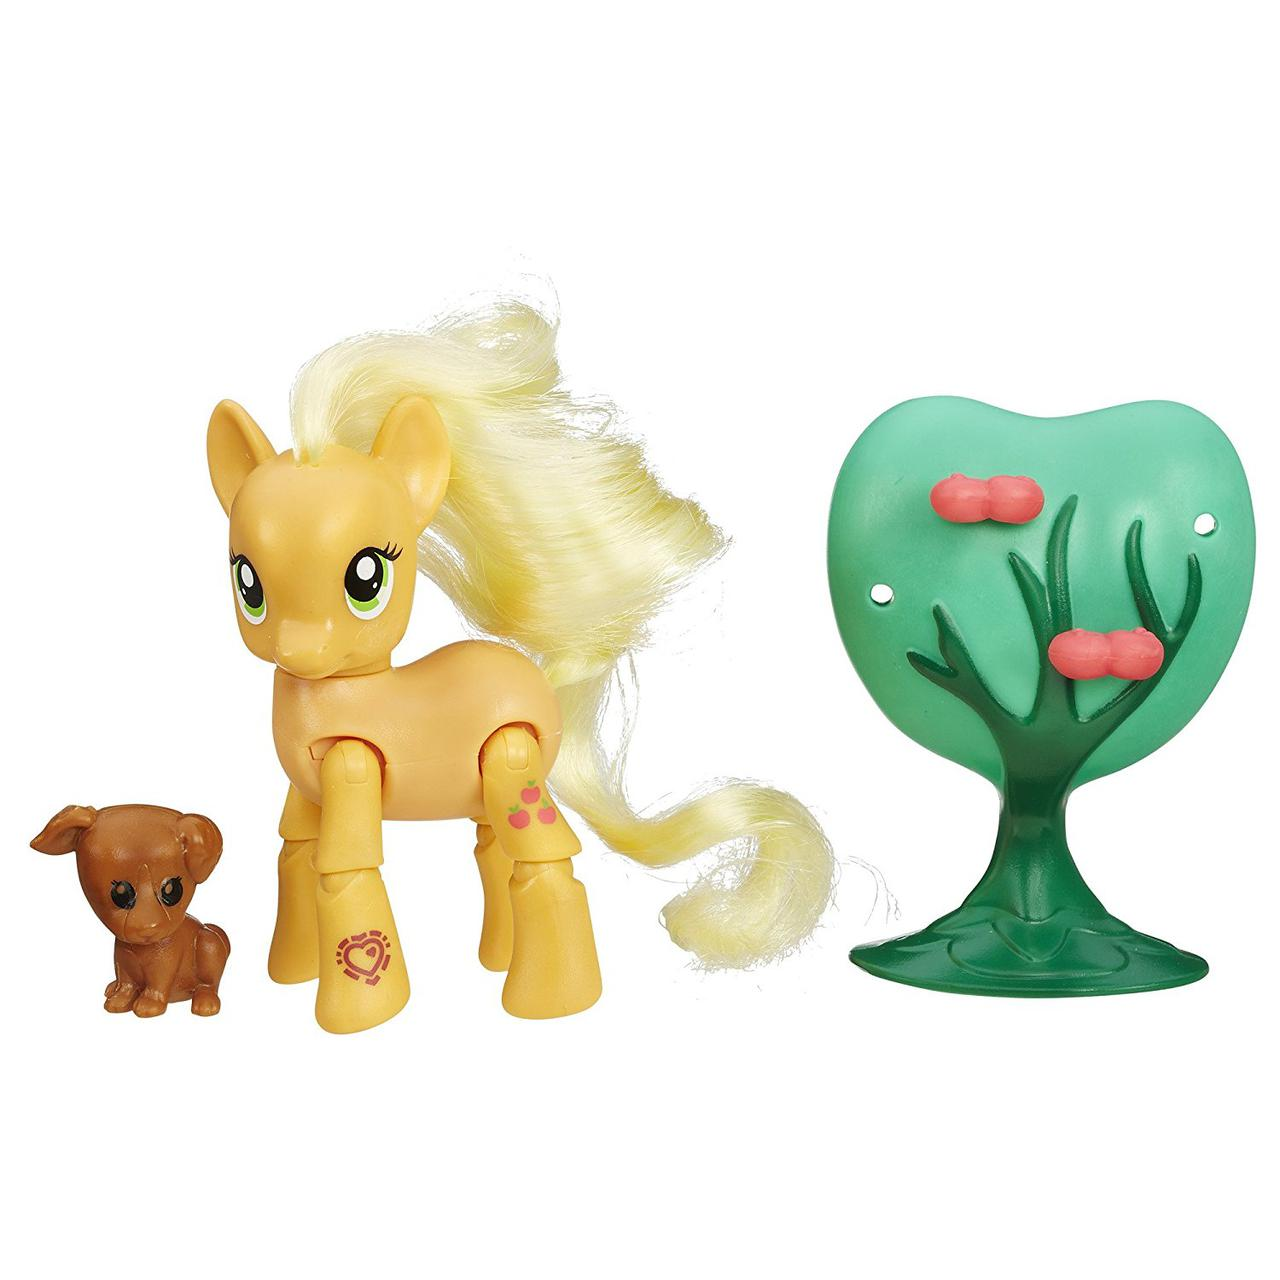 Пони Эпплджек с артикуляцией My Little Pony Friendship Is Magic Applejack Applebucking Poseable Pony